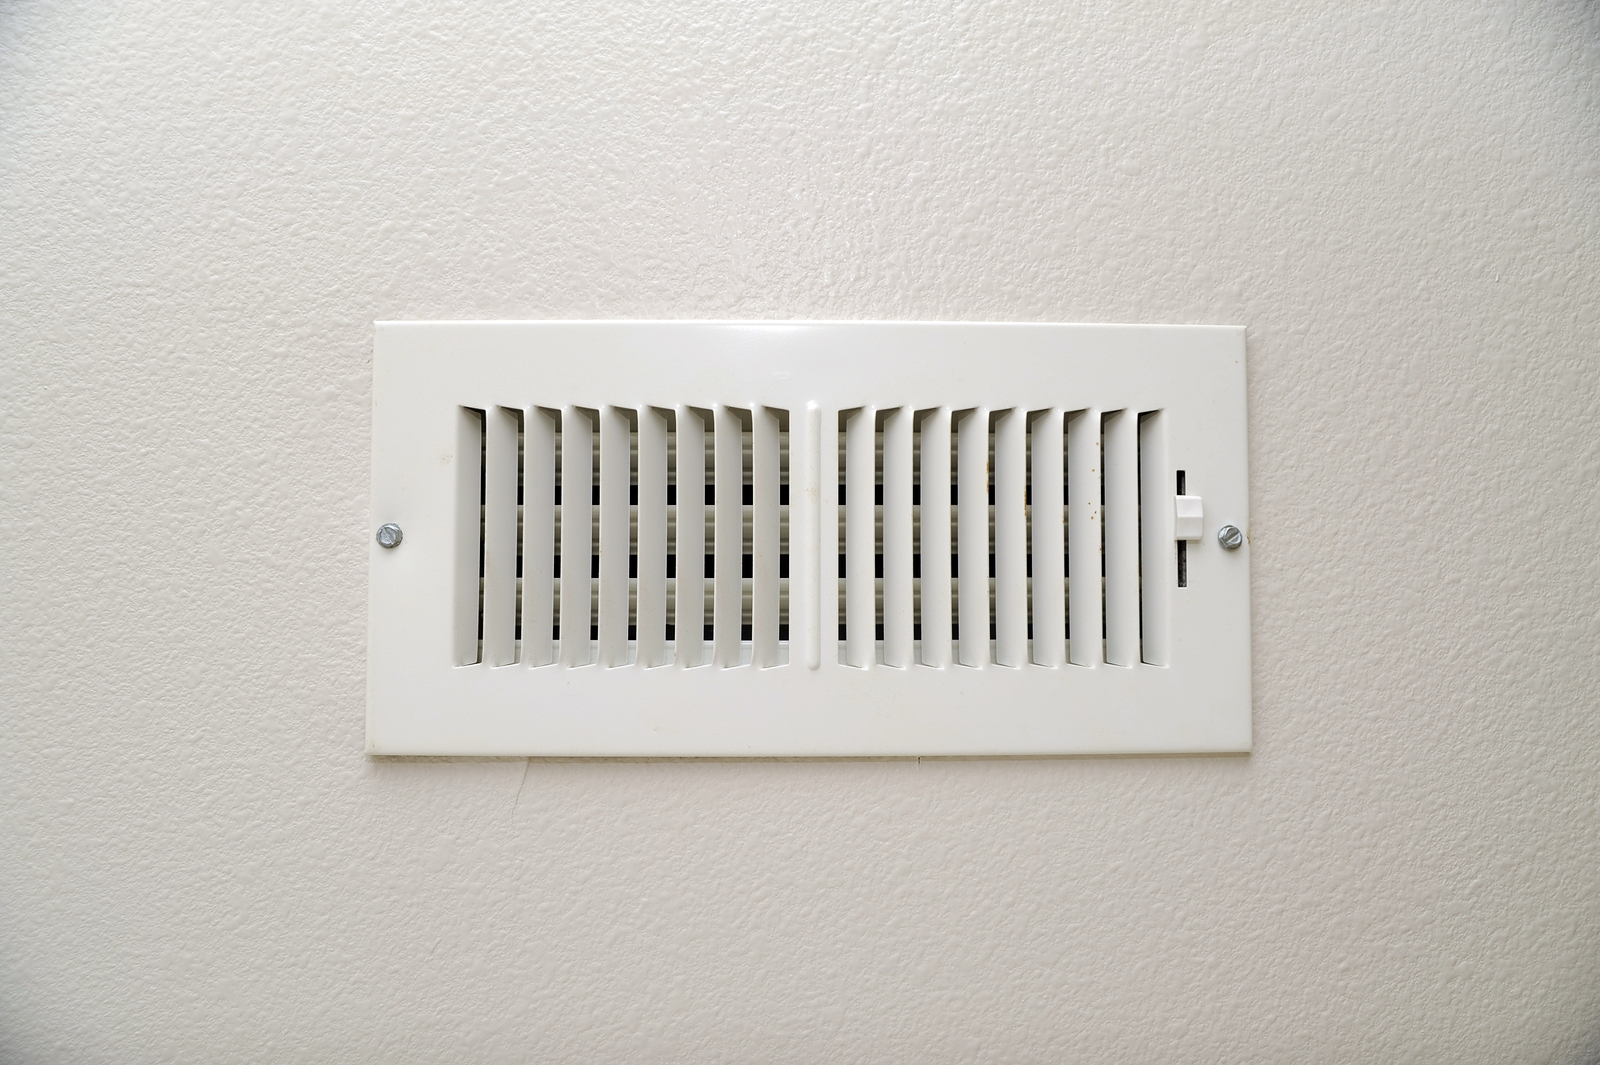 #585244 Why Is My HVAC System Not Cooling My Second Floor? Best 10113 Air Condition Vents photos with 1600x1065 px on helpvideos.info - Air Conditioners, Air Coolers and more